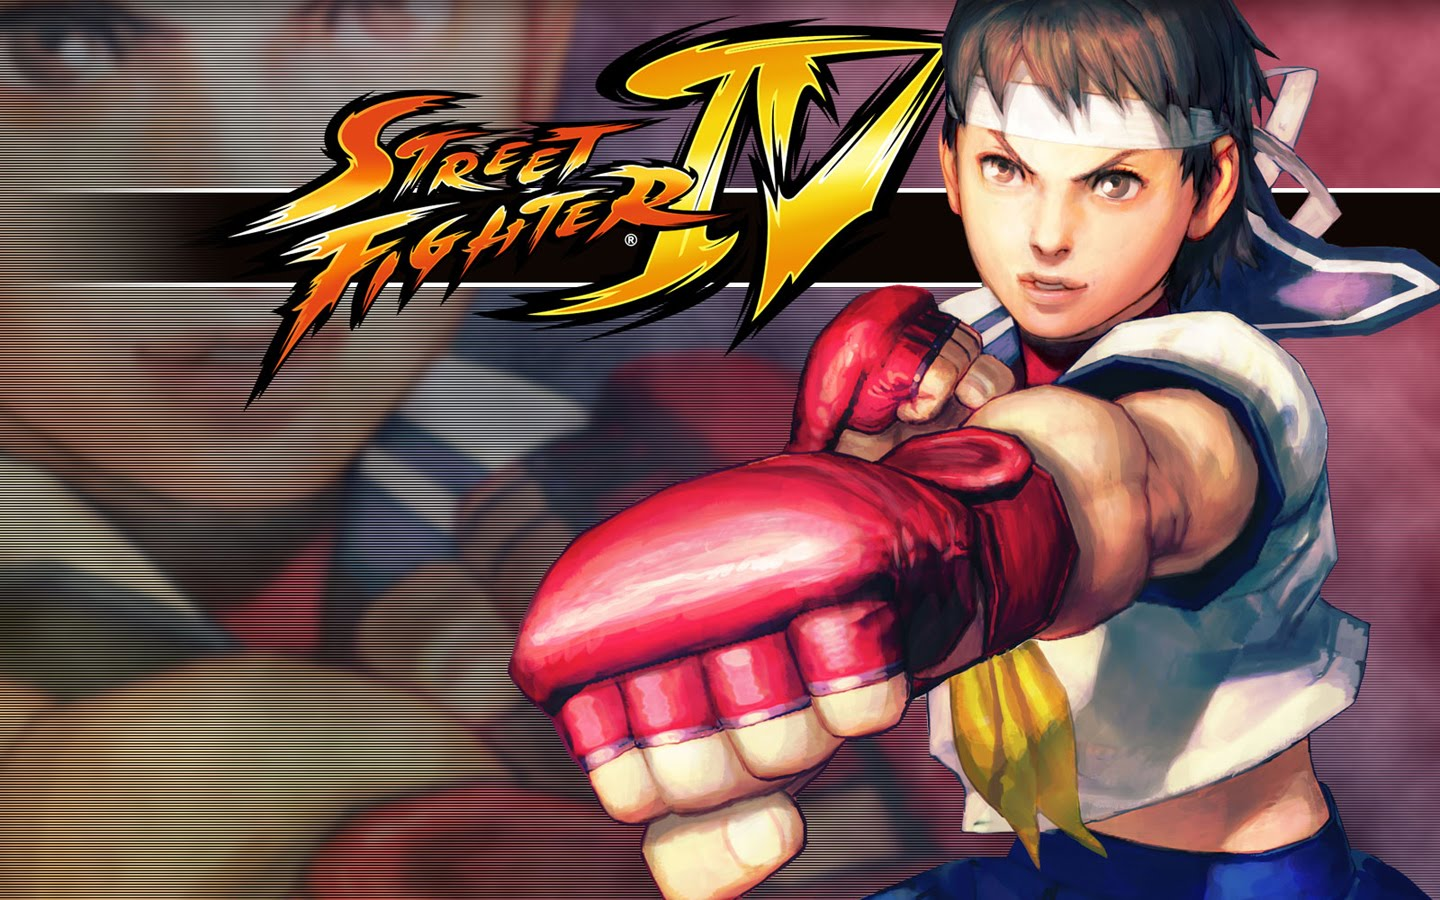 Street Fighter HD & Widescreen Wallpaper 0.98182050019163